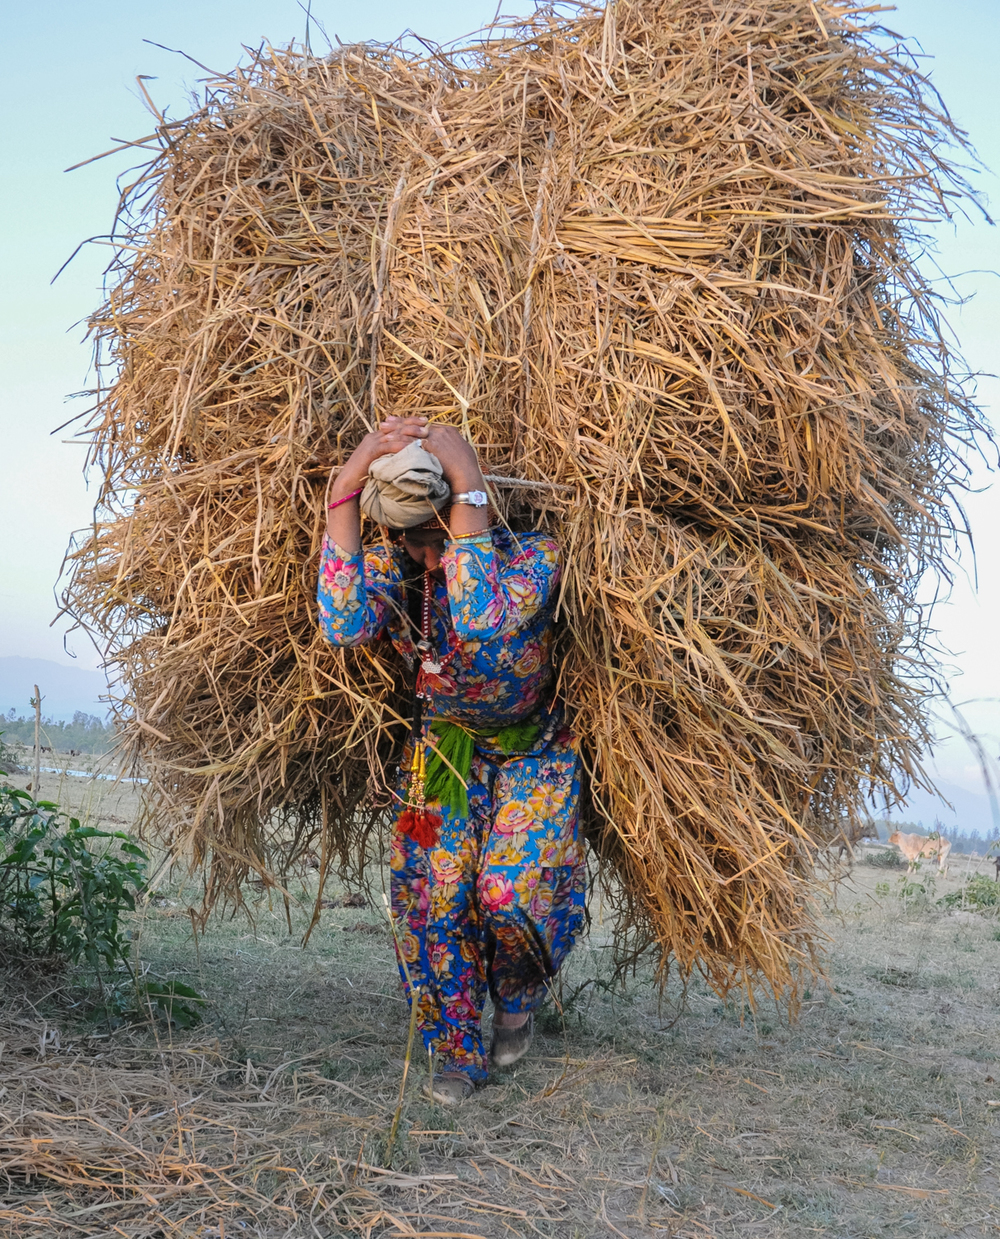 While traveling outside the forest on the migration, Van Gujjar families need to buy fodder for their herds. Here, Apa, the eldest daughter, carries a towering load of grass for the buffaloes' evening meal.